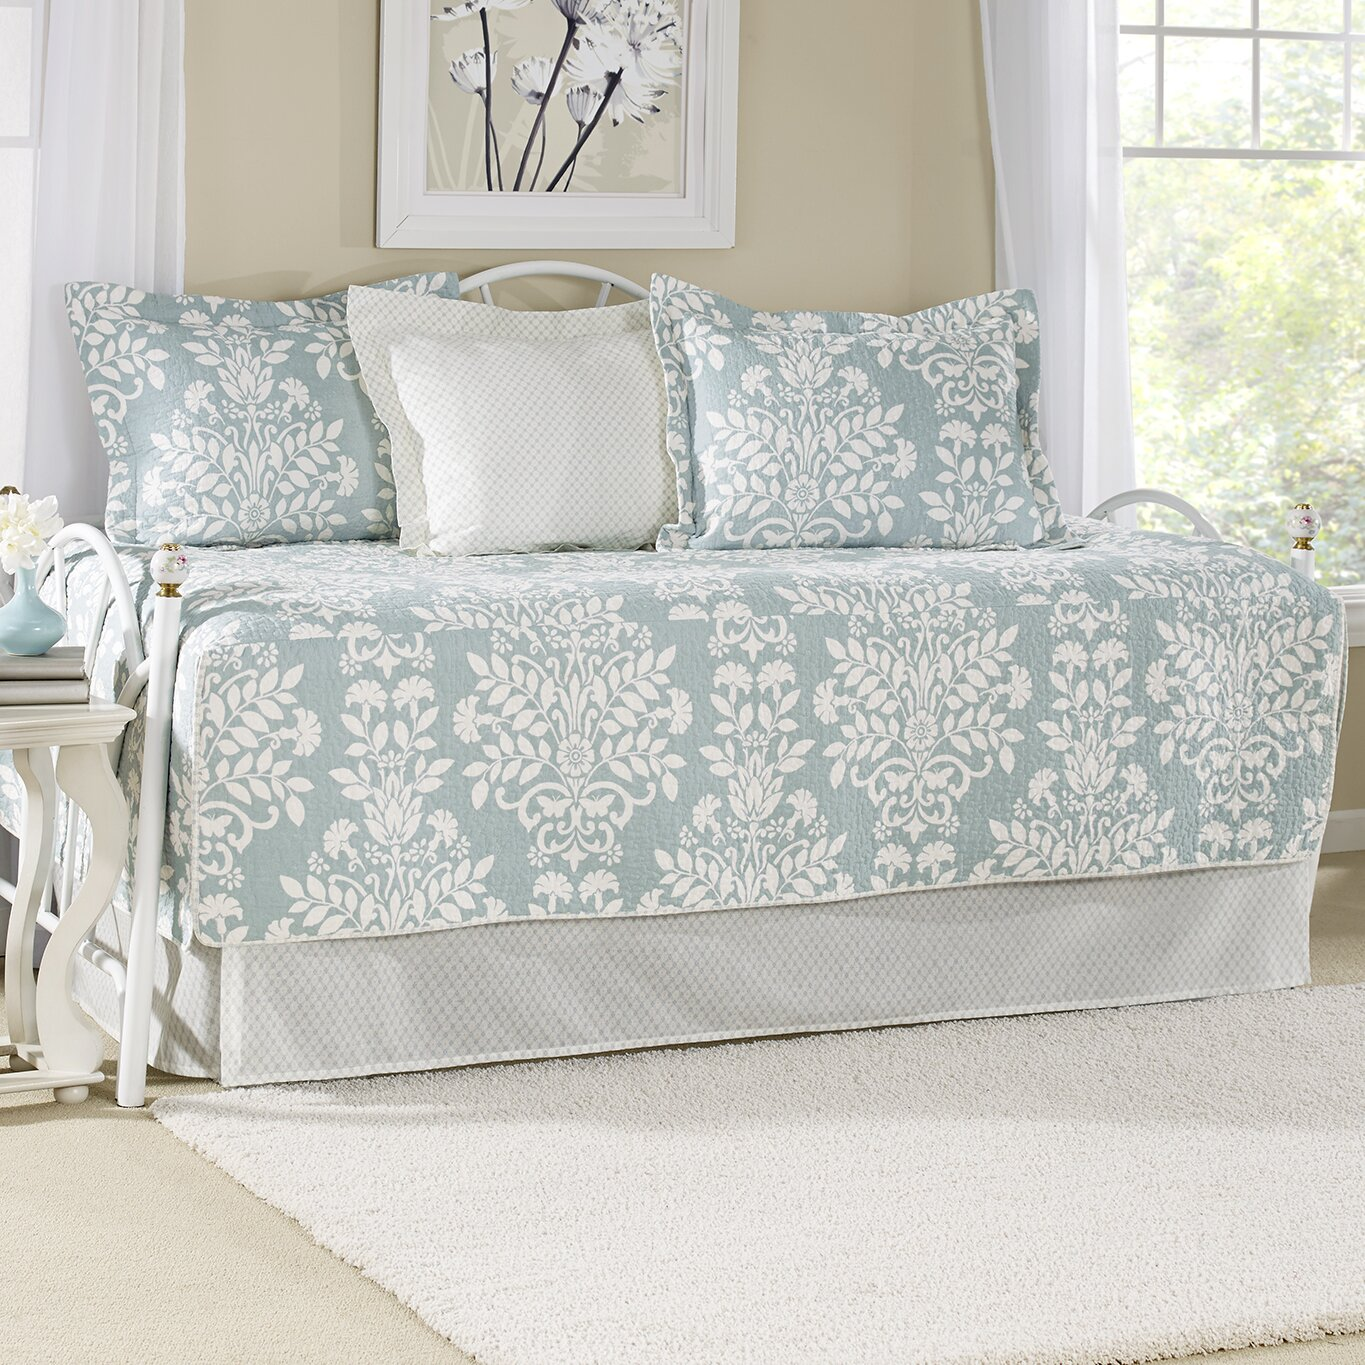 Laura Ashley Bedrooms Idea Daybed Bedding Sets Youll Love Wayfair